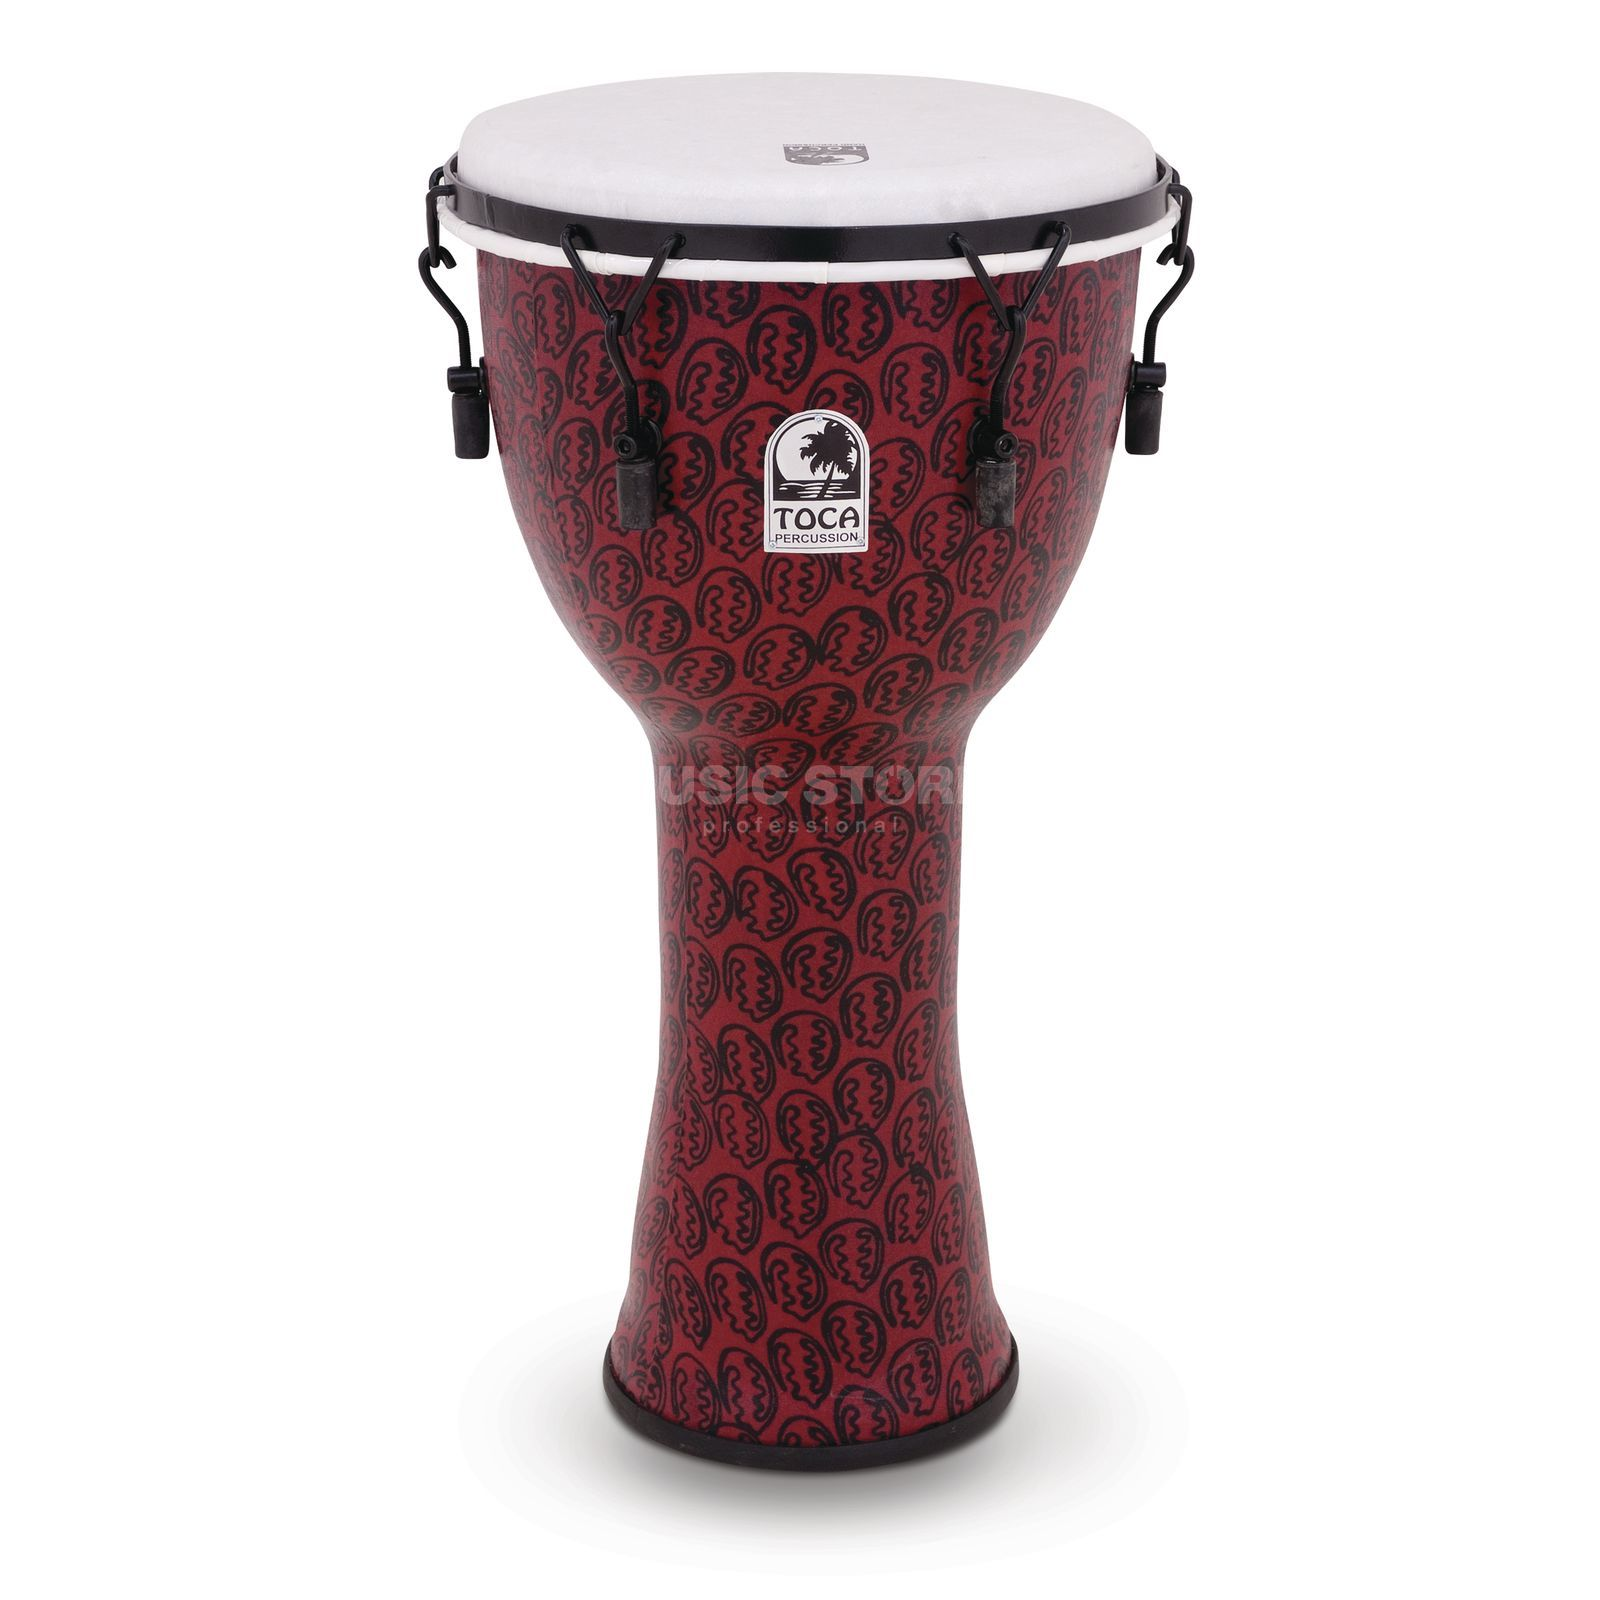 "Toca Percussion Freestyle Djembe TF2DM-10RM, 10"", Red Mask Produktbild"